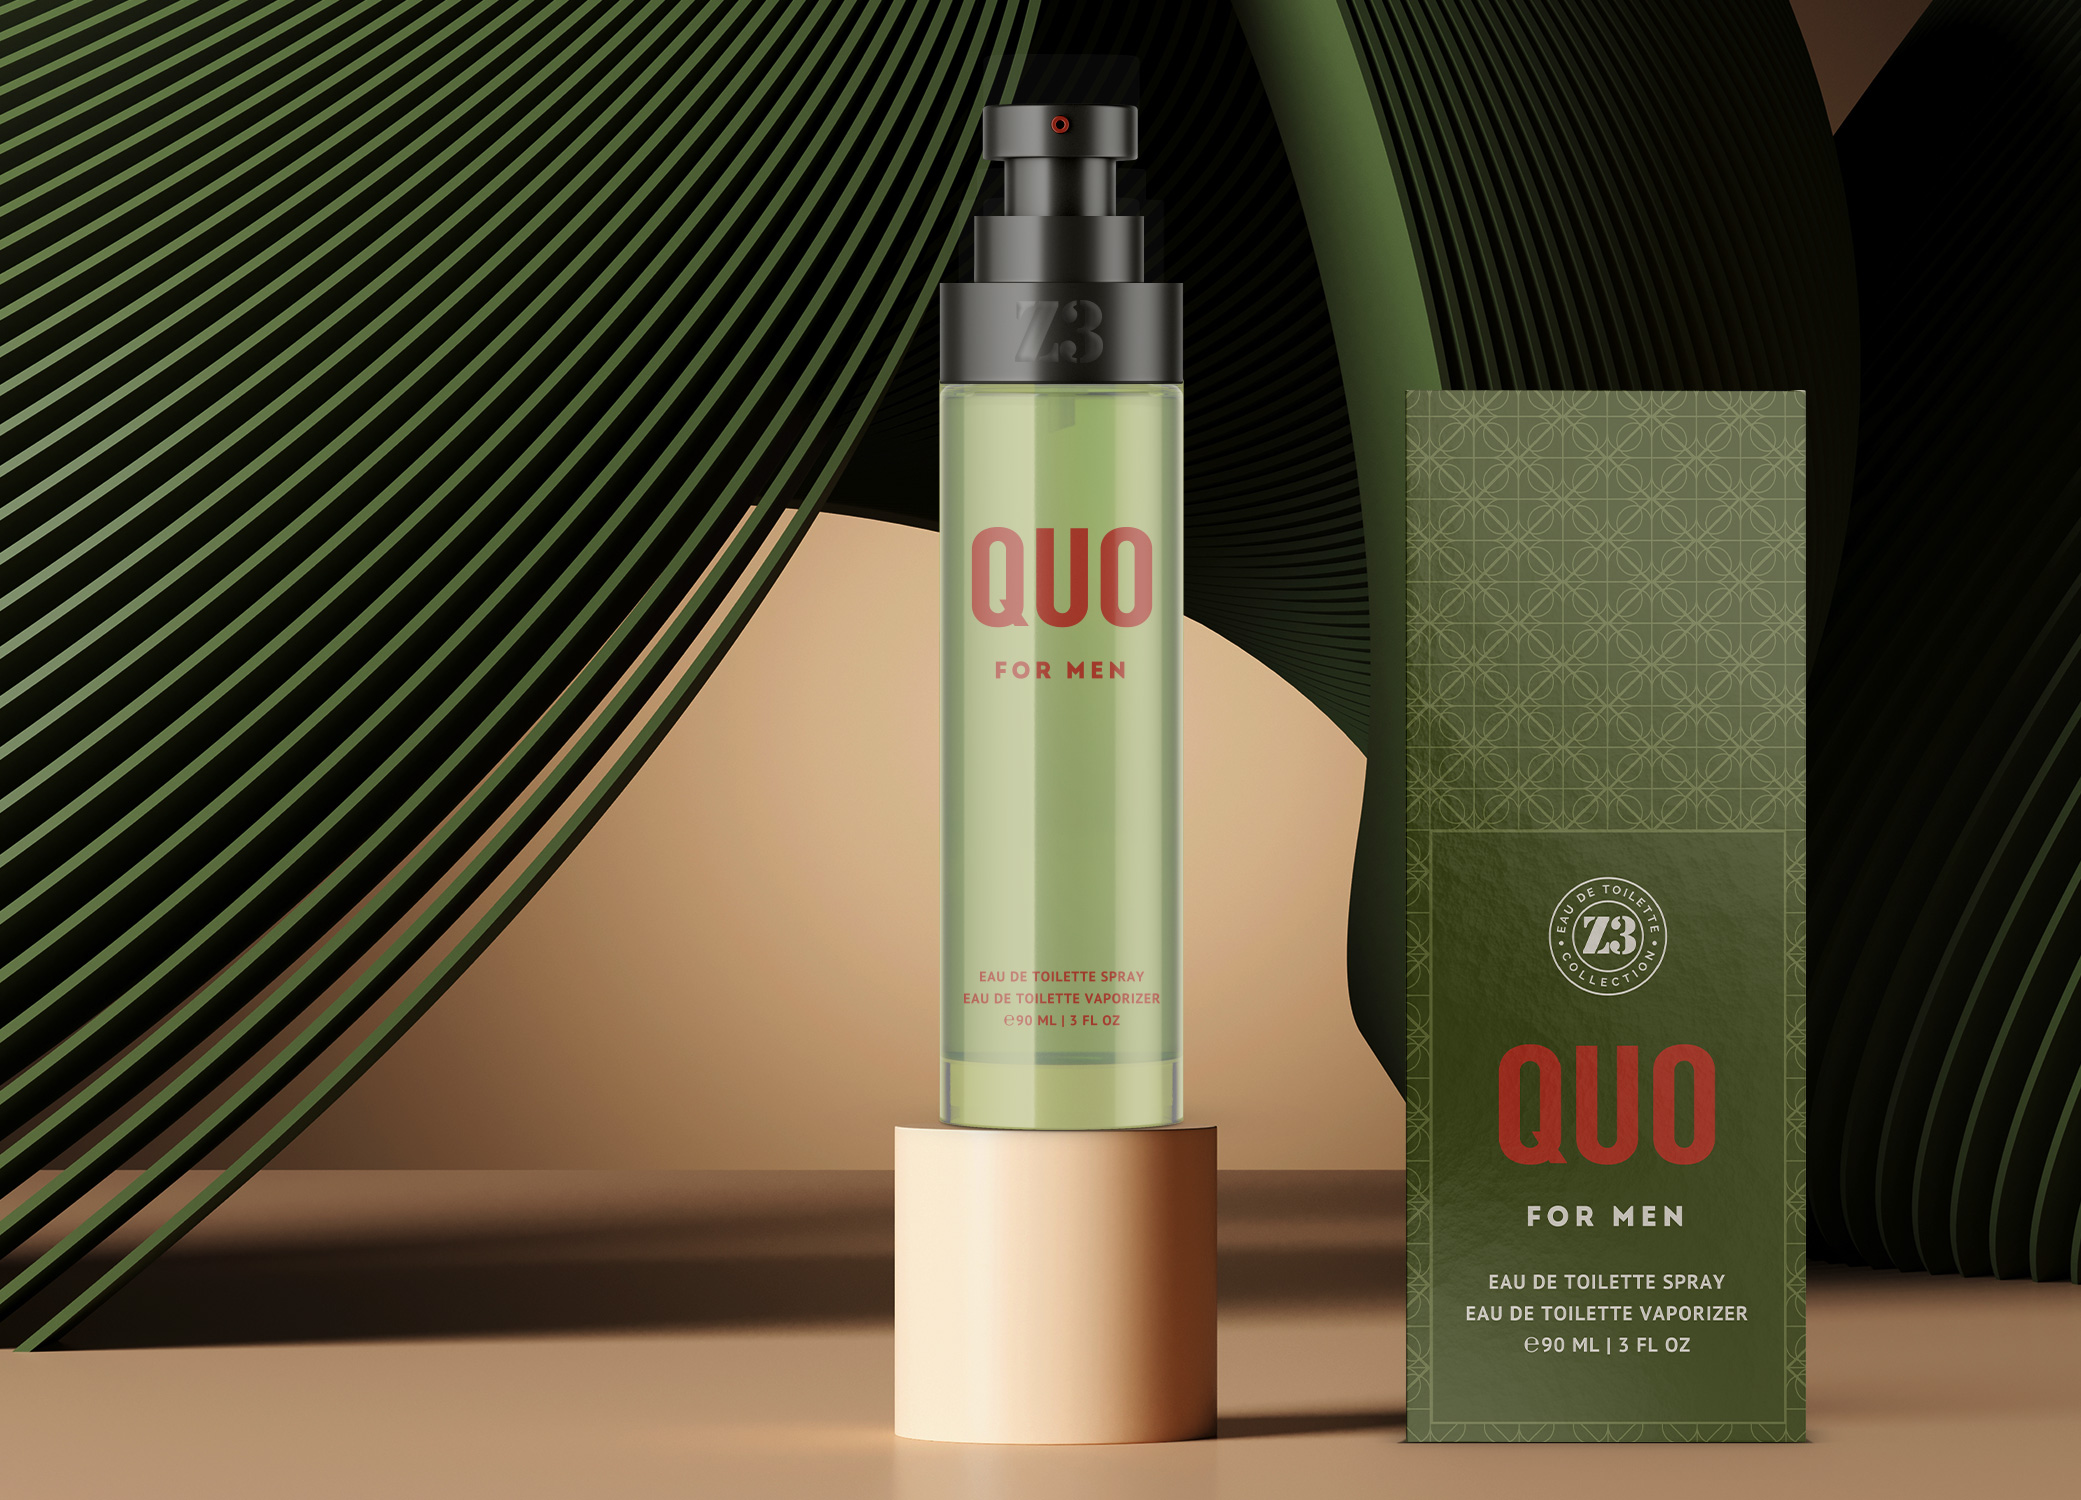 YZY Perfume men's fragrance bottle and package design in olive and rust with ornate pattern for Z3 Quo product.